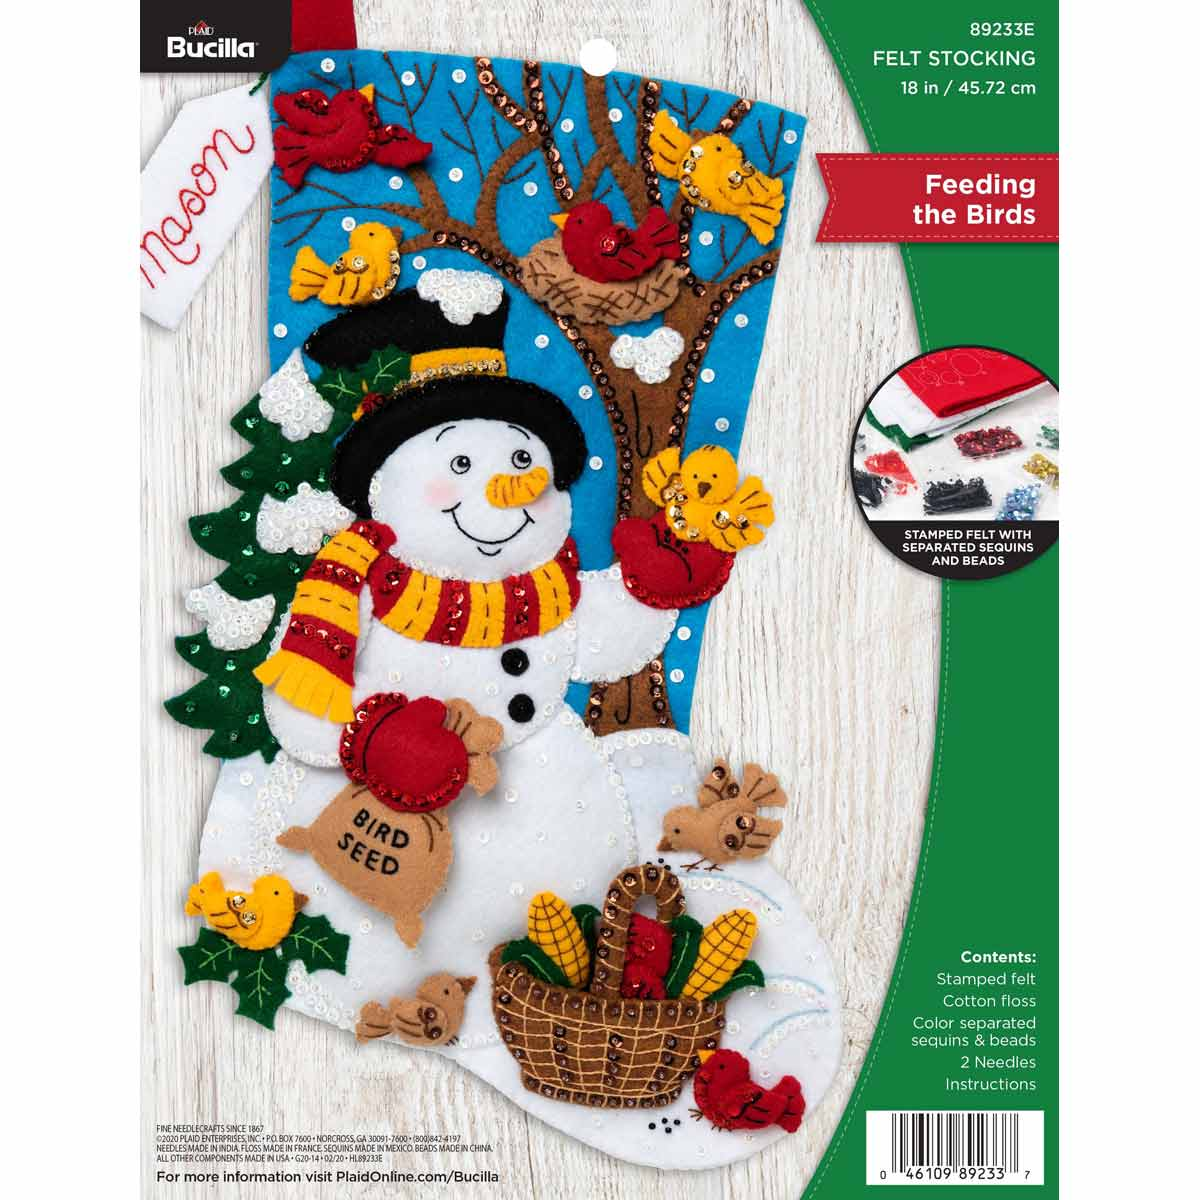 Bucilla ® Seasonal - Felt - Stocking Kits - Feeding the Birds - 89233E